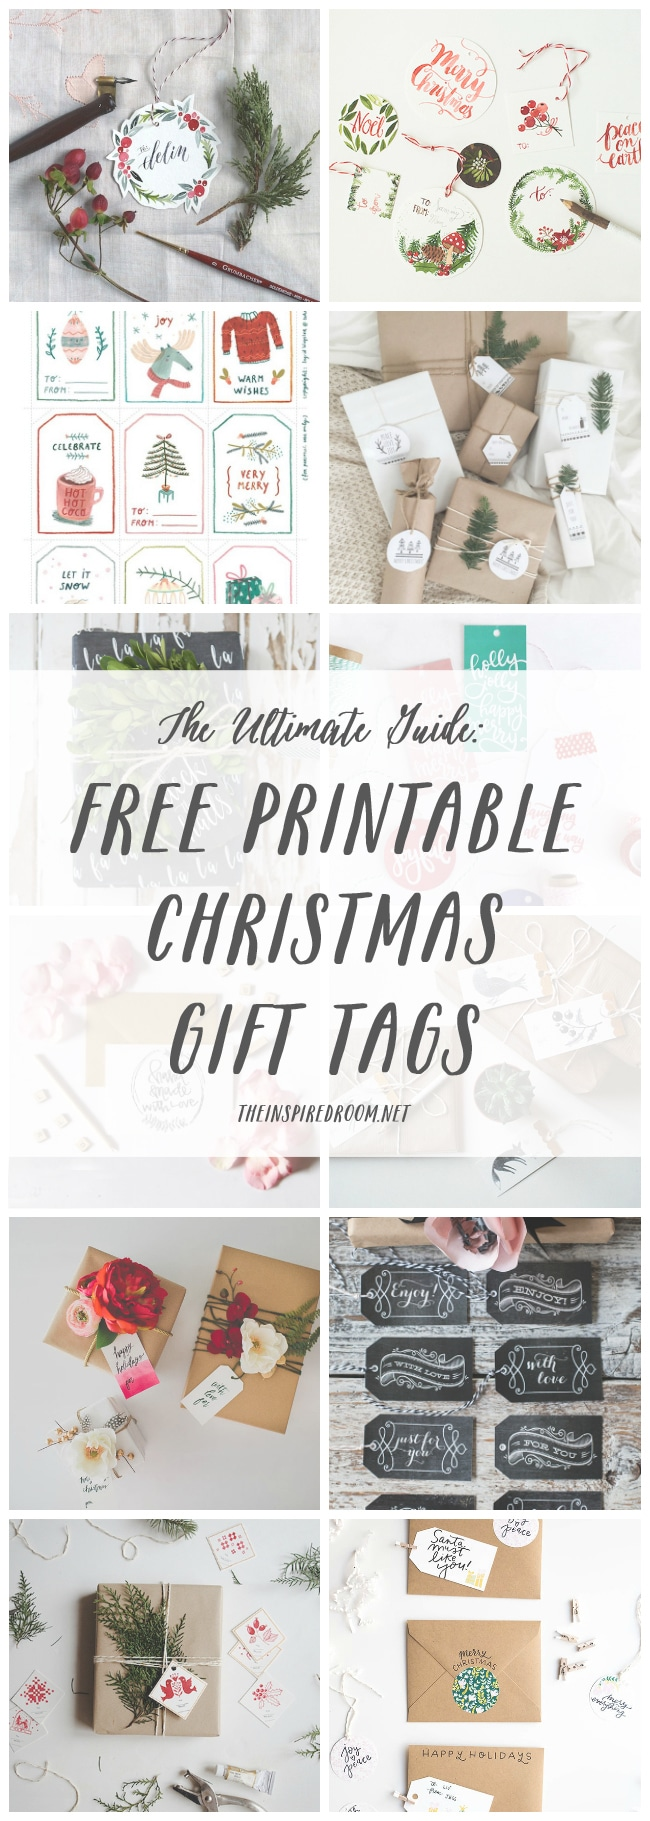 The Ultimate Guide: FREE Printable Christmas Gift Tags